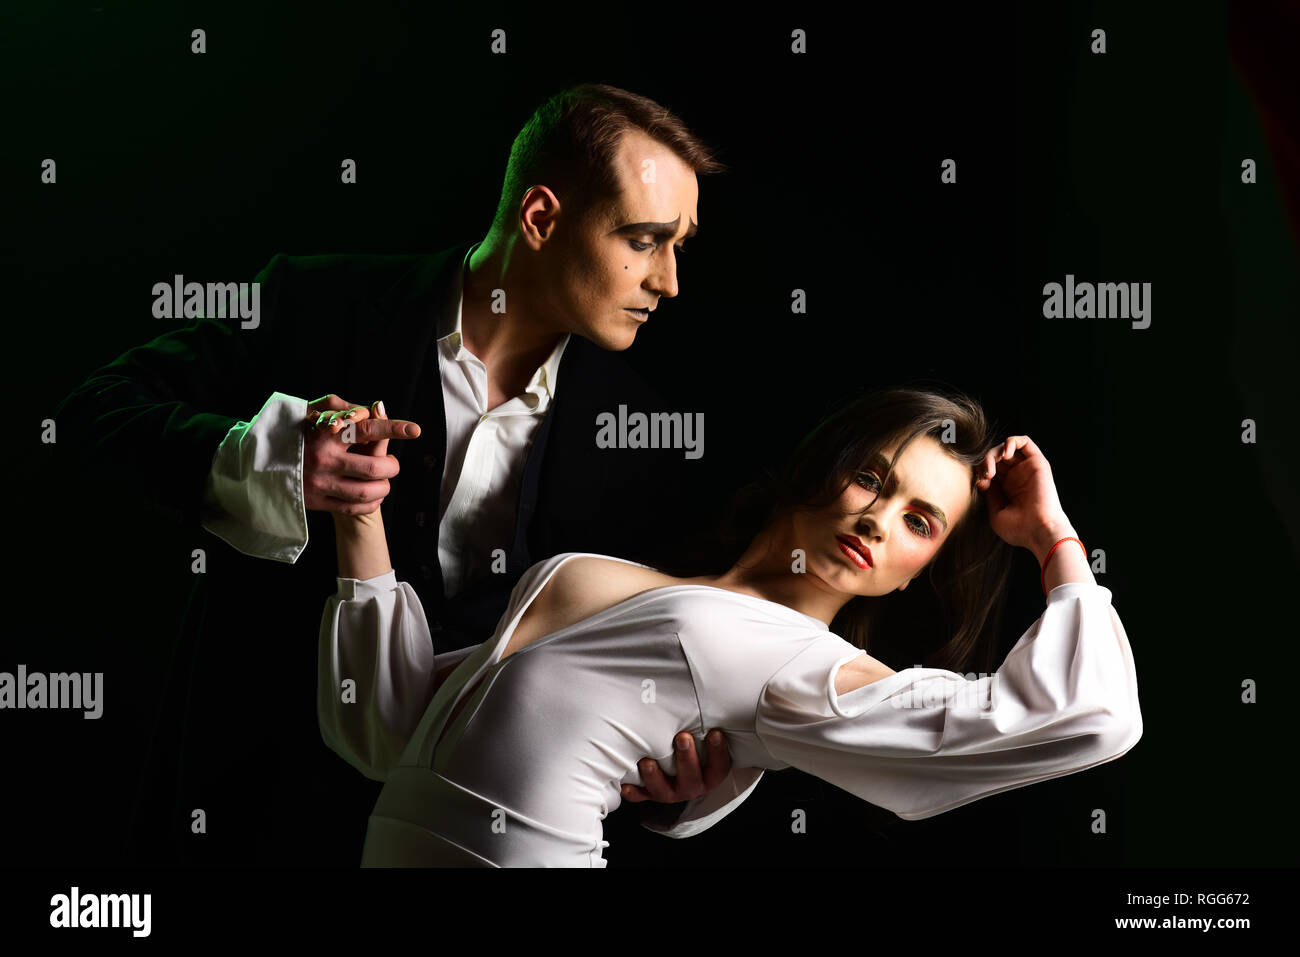 Making your heart flutter. Mime man and woman act in romantic scene. Couple of mime artists perform romance on stage. Theatre actors miming through - Stock Image